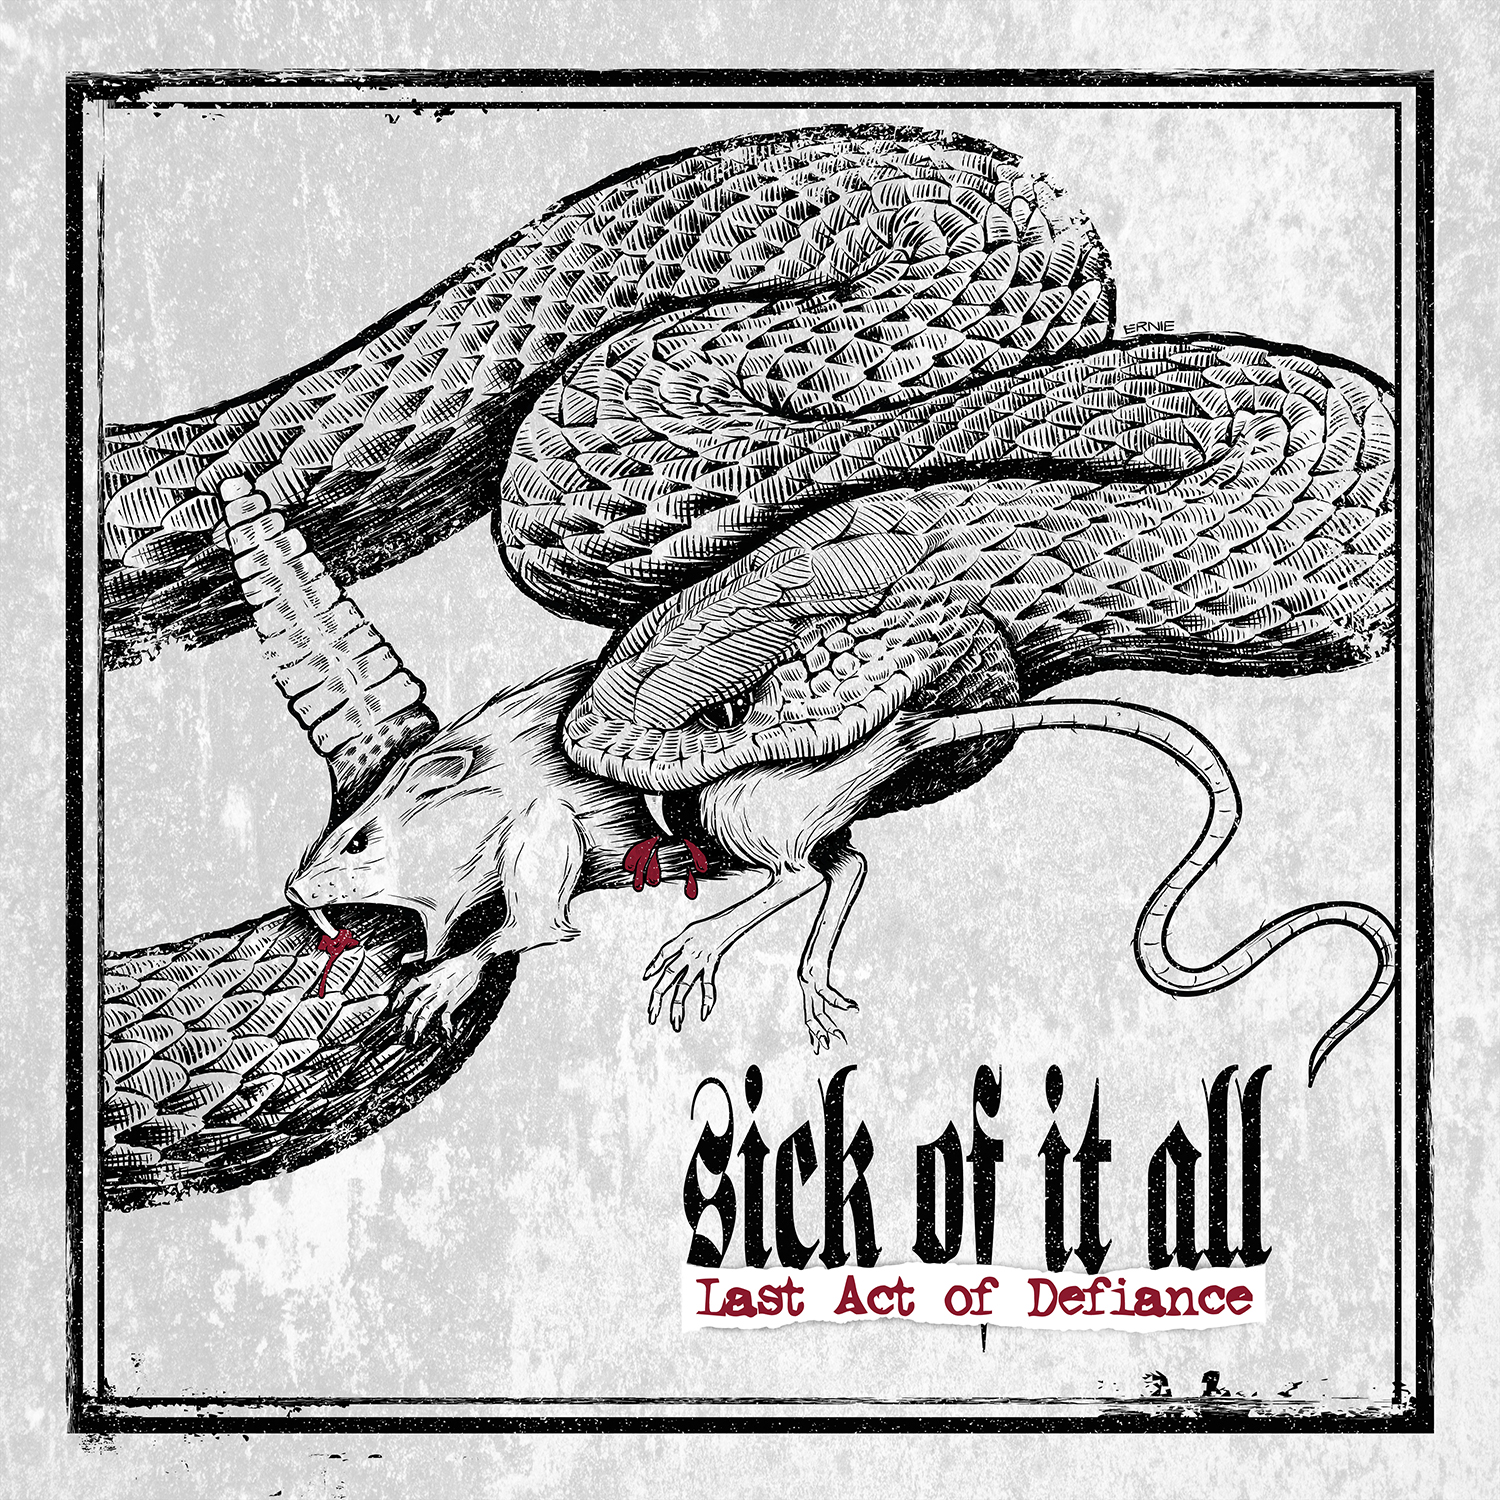 Sick of It All – Last Act of Defiance Review